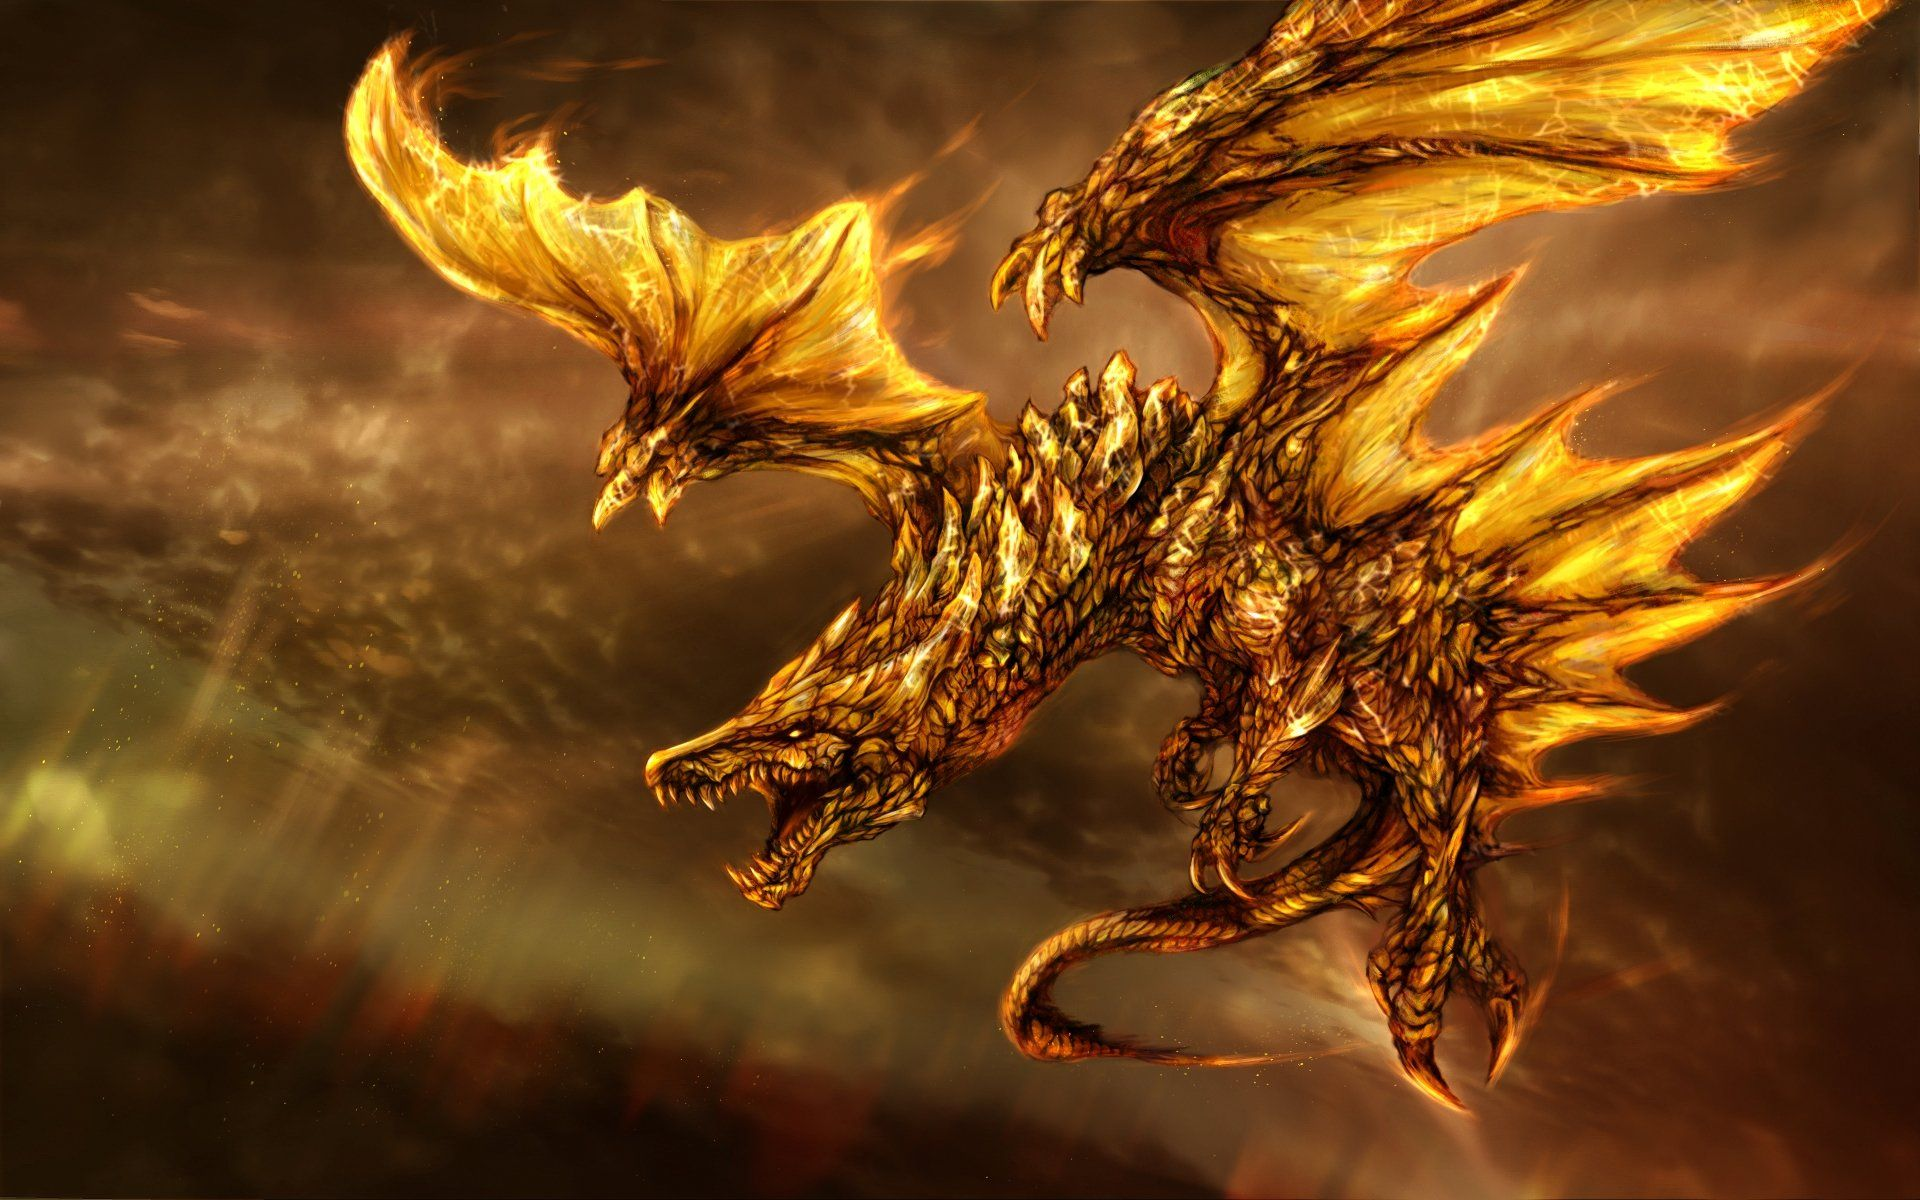 Dragon Pictures Dragon Wallpapers Hd Free Download